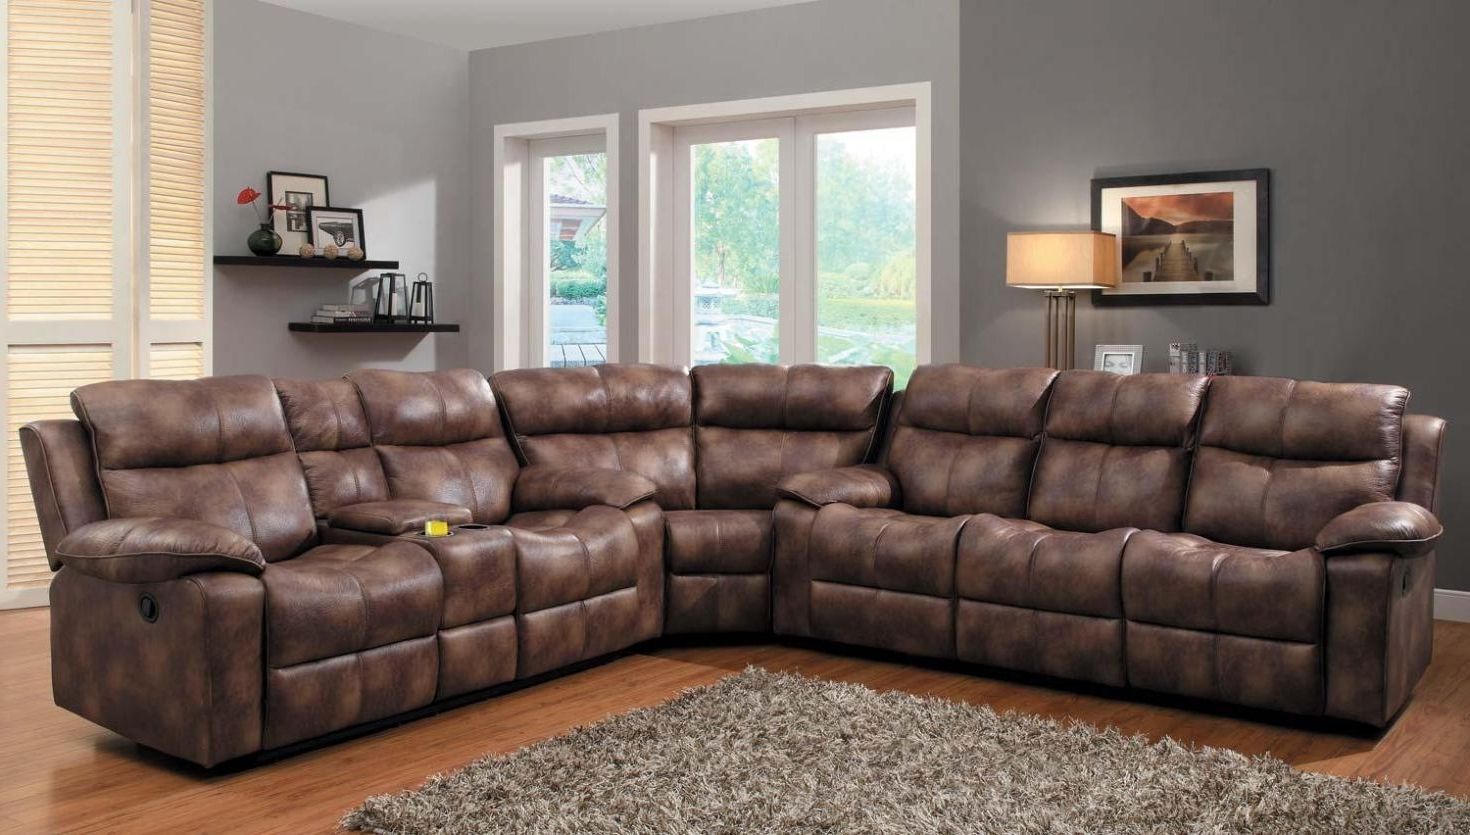 Clearance Sectional Sofas For Well Liked Genuine Leather Sectional Sectionals Sofas Top Grain Leather Sofa (View 8 of 15)